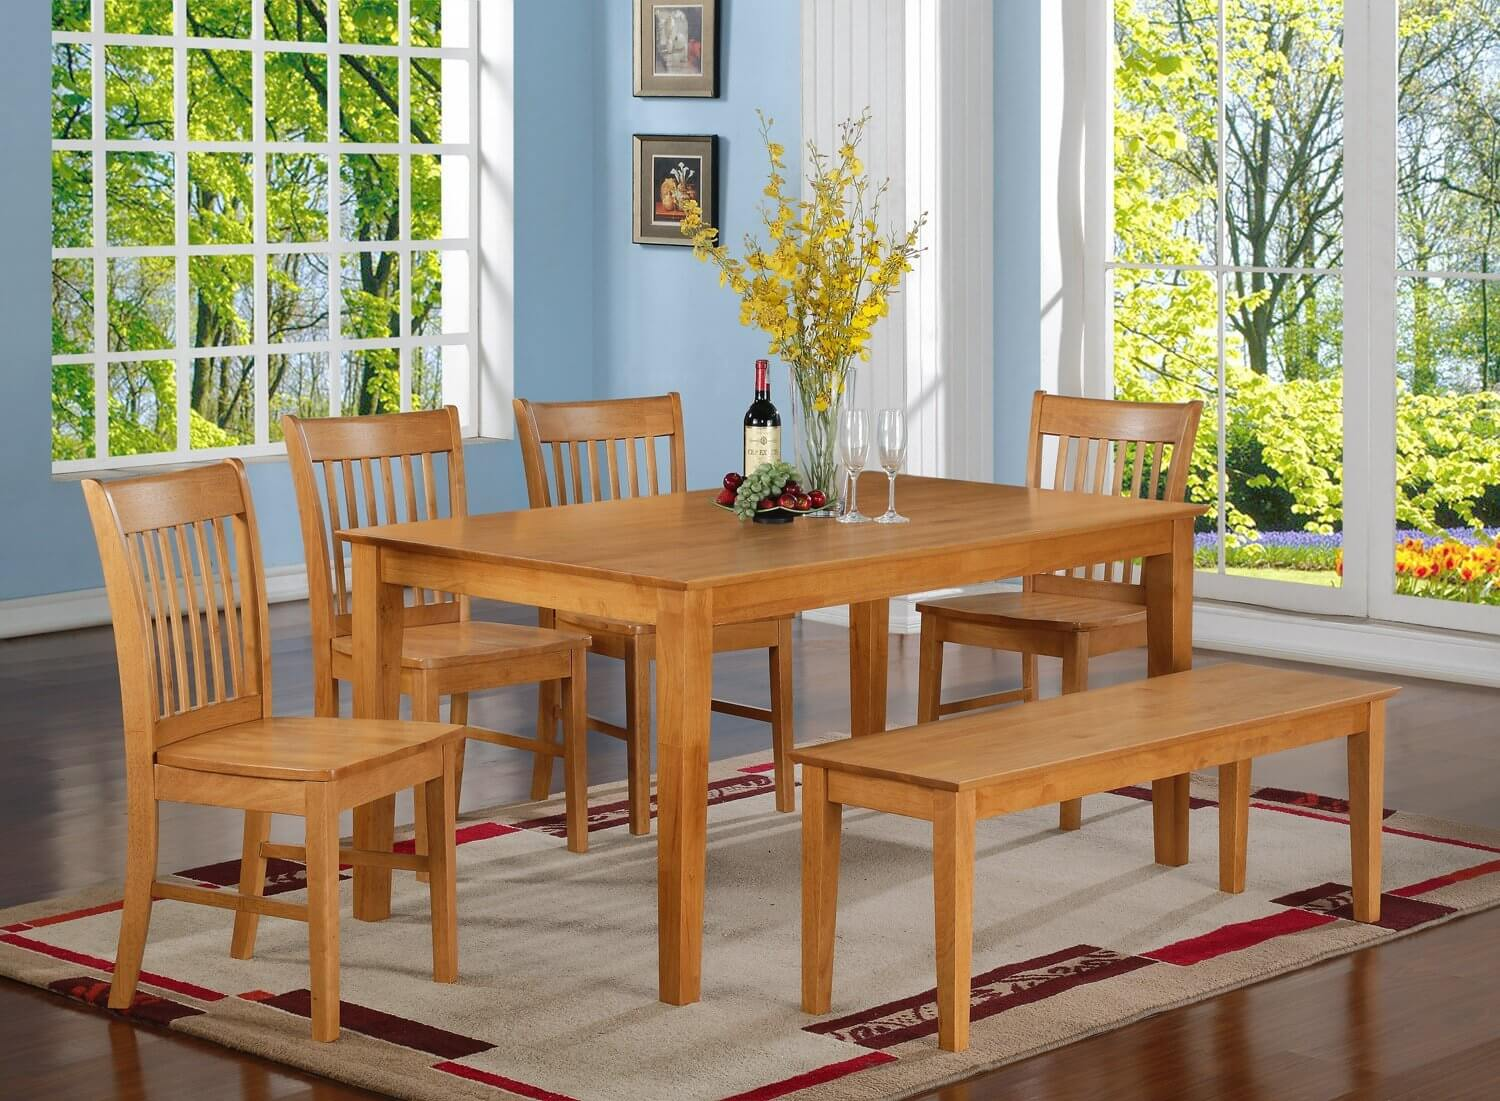 Oak finish six piece bench style dining room set with large rectangle table   It s. 26 Big   Small Dining Room Sets with Bench Seating